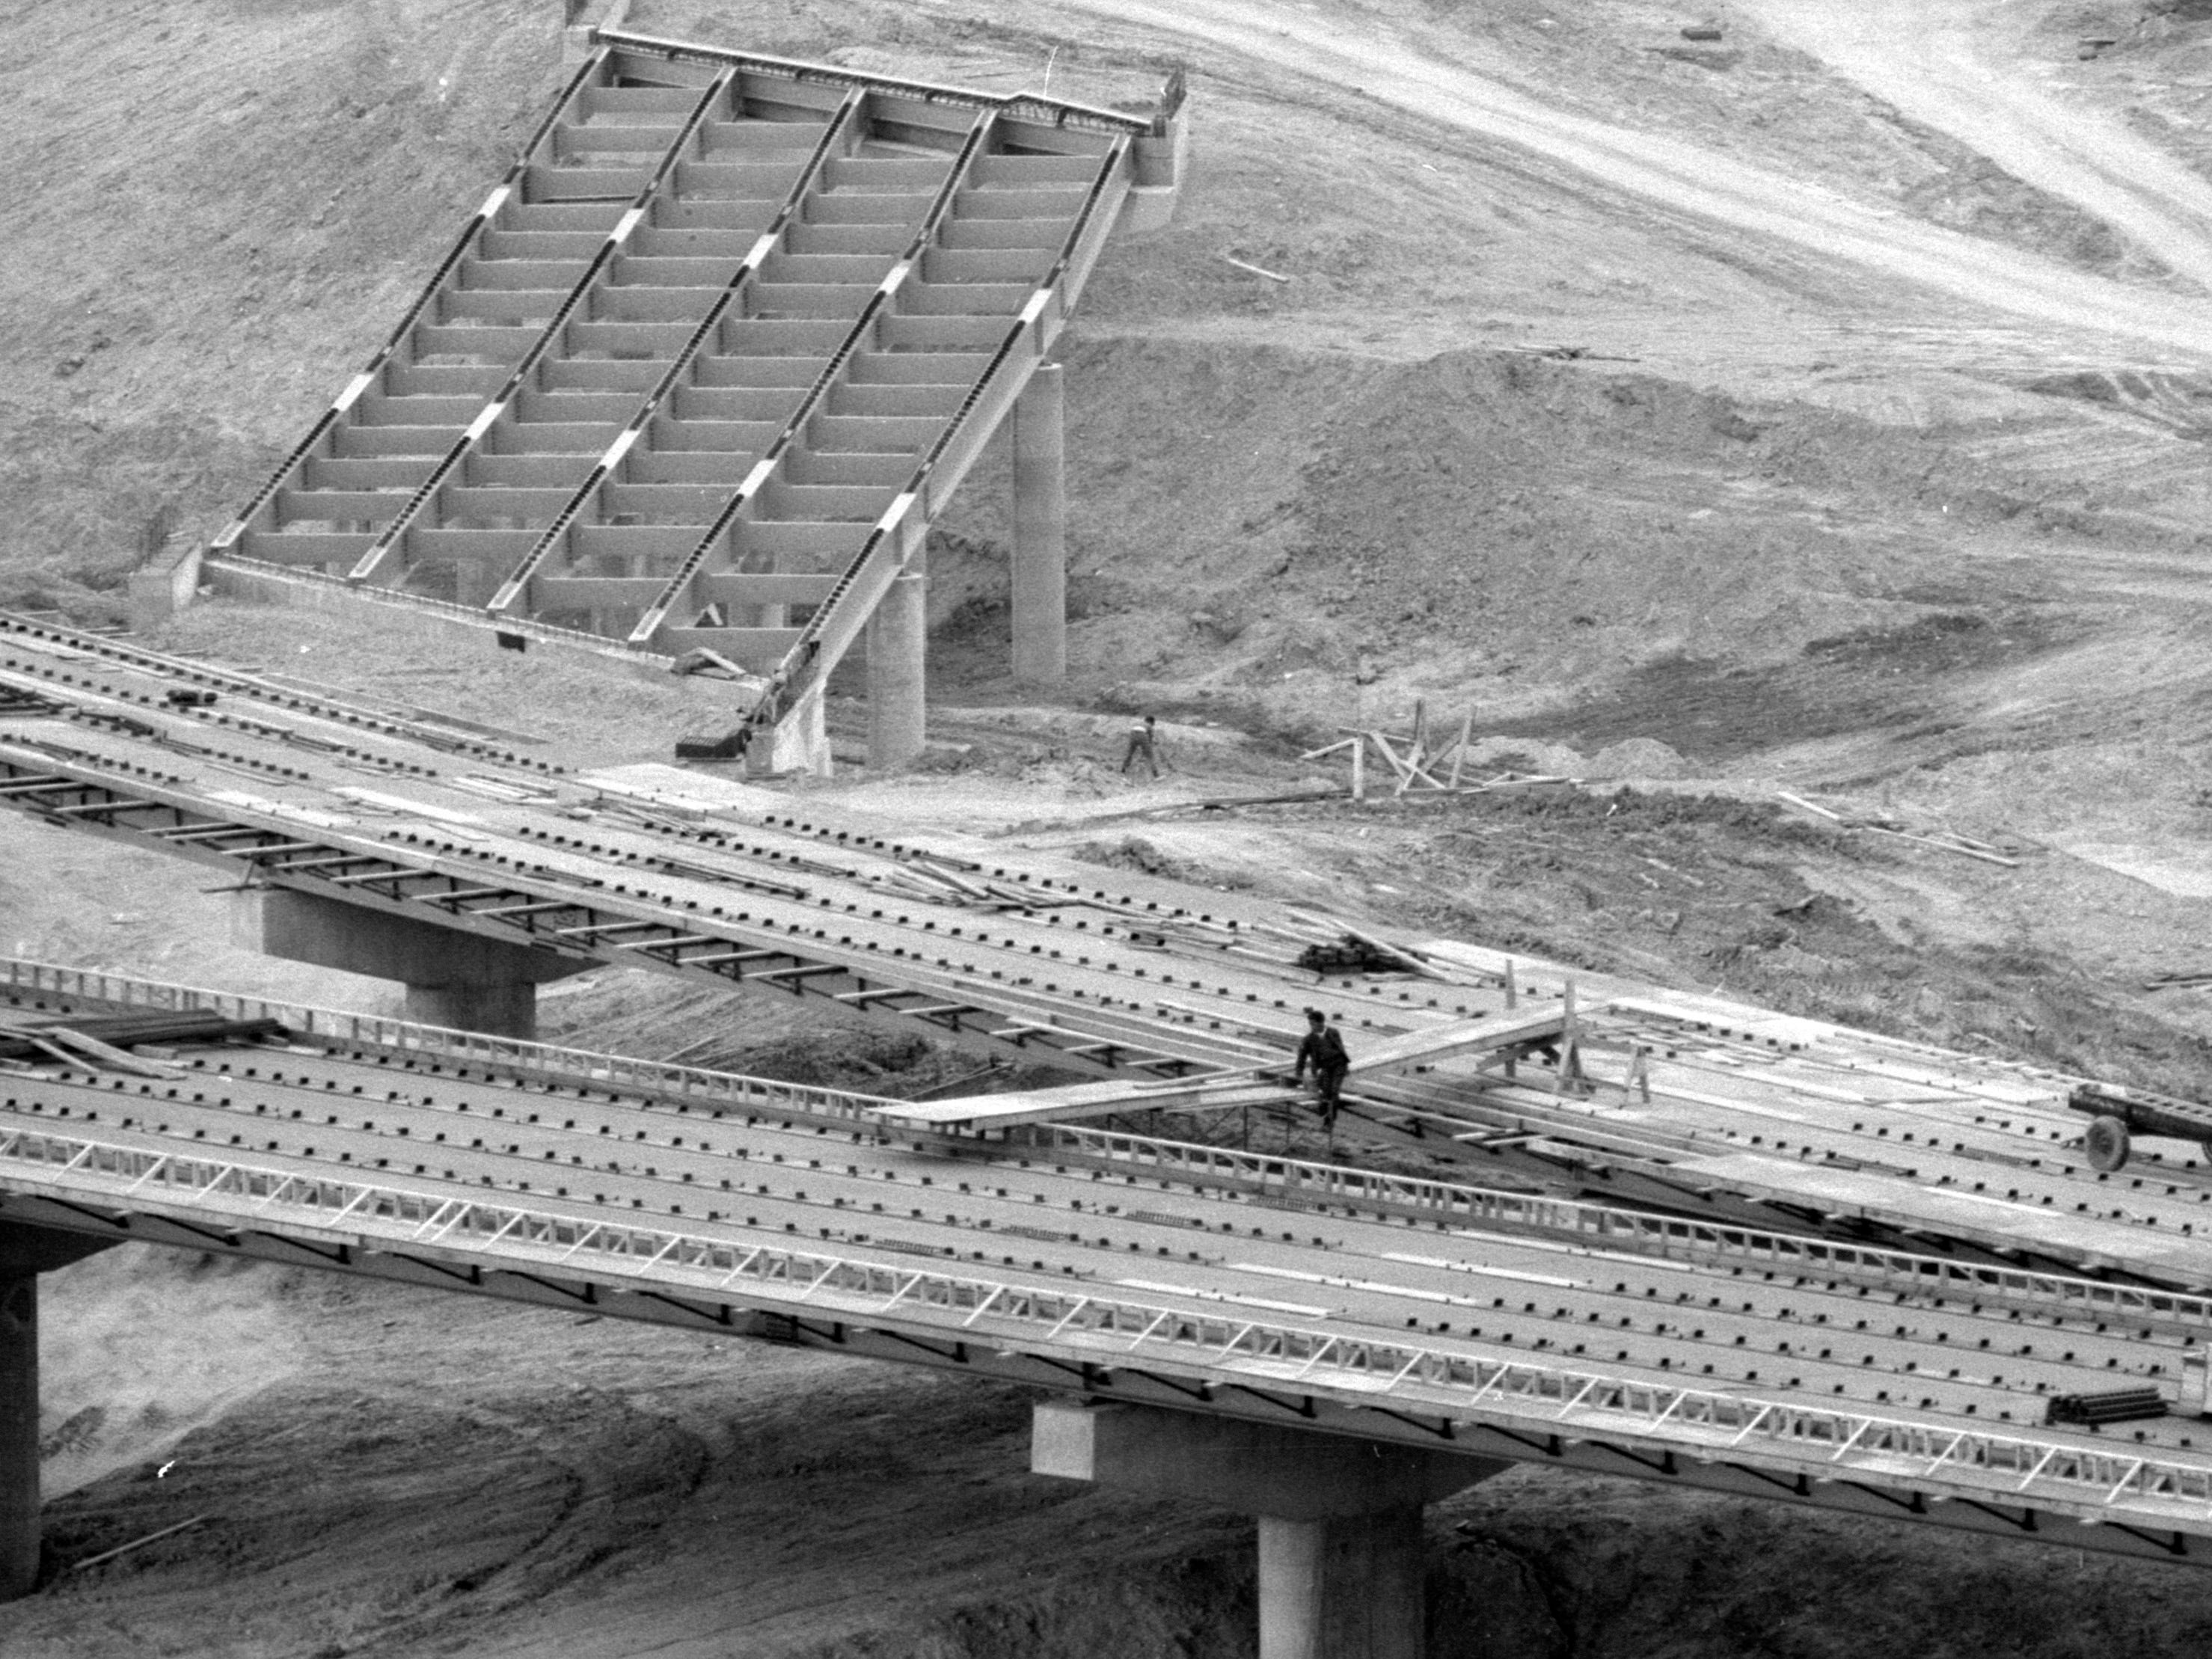 A construction worker crosses a still-under-construction on-ramp at the Central Interchange during construction in the spring of 1968. The project was renamed the Marquette Interchange later that fall.